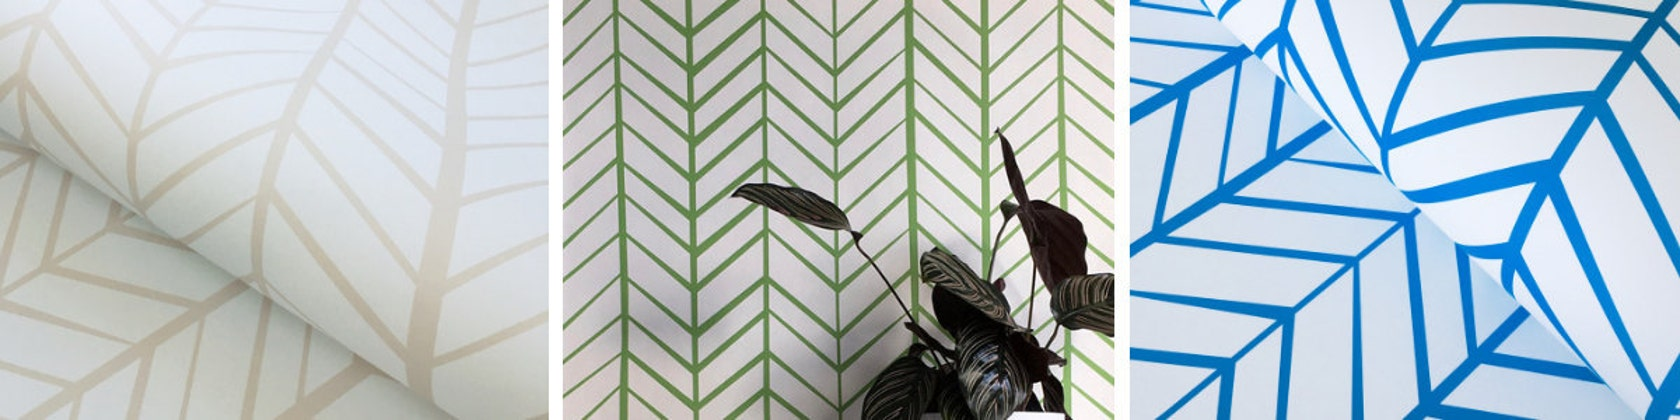 Bespoke Self Adhesive Repositionable Fabric By Bcmagicwallpaper